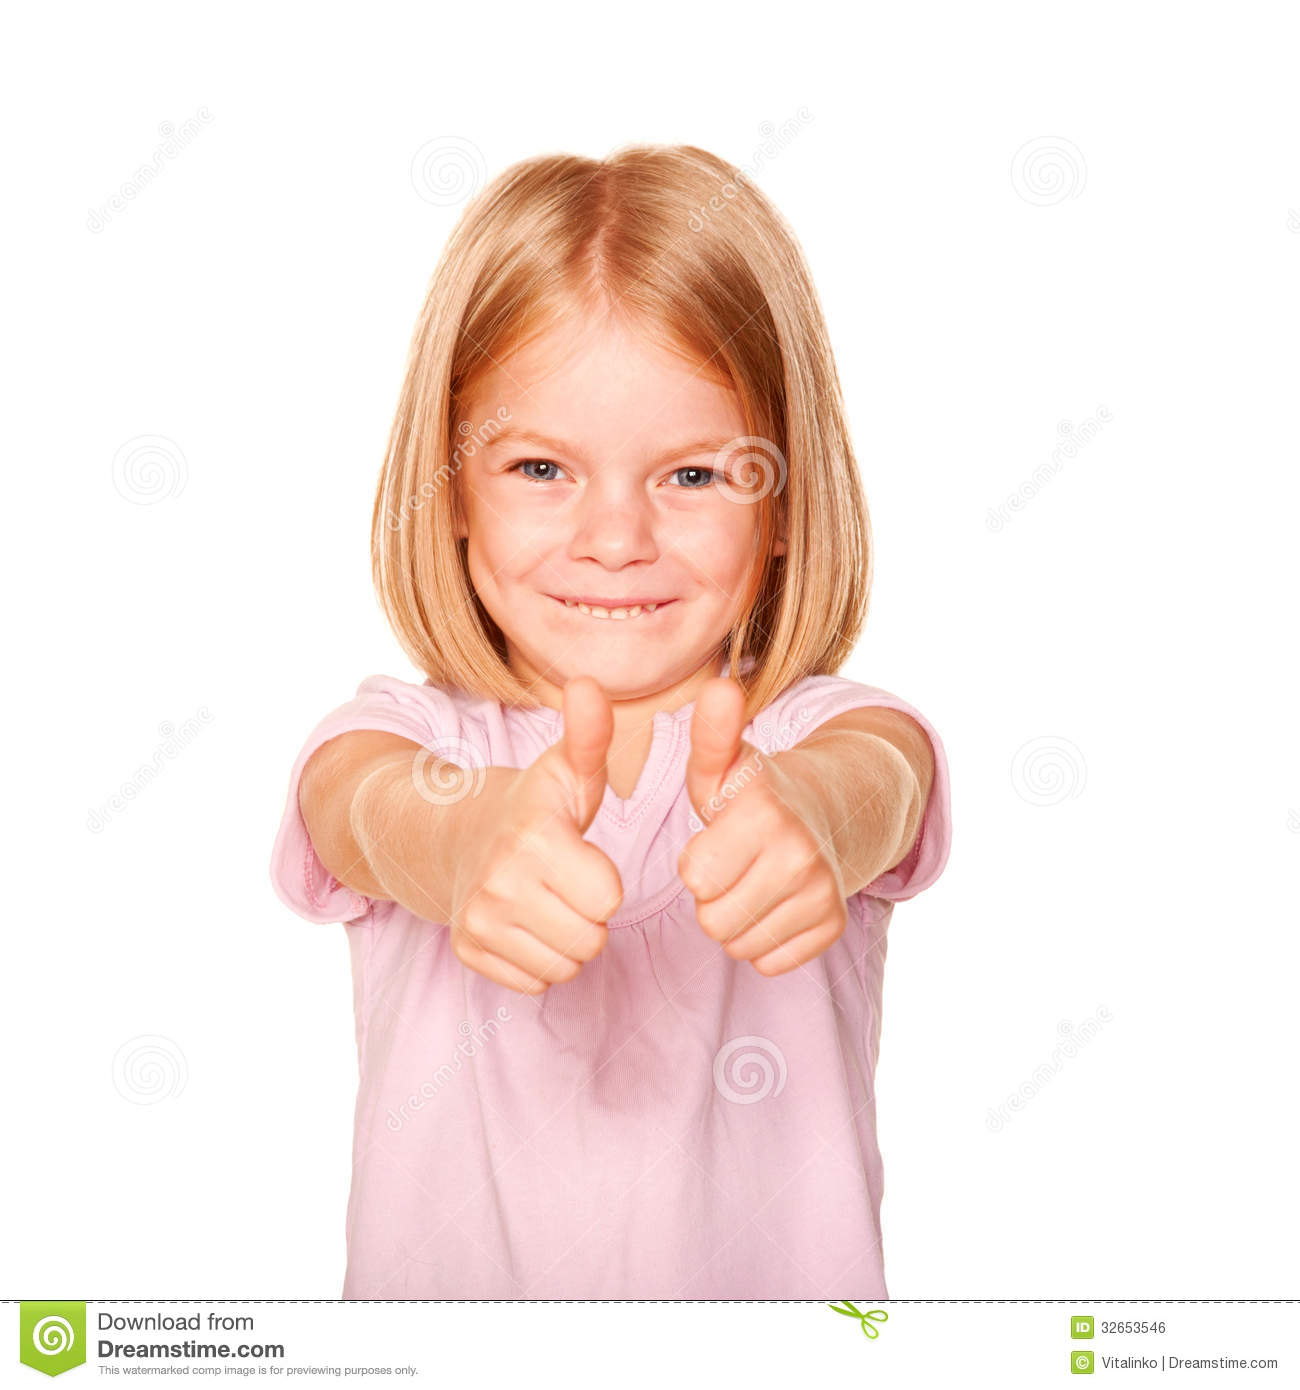 Happy Little Girl Showing A Thumbs Up Sign Royalty Free ...